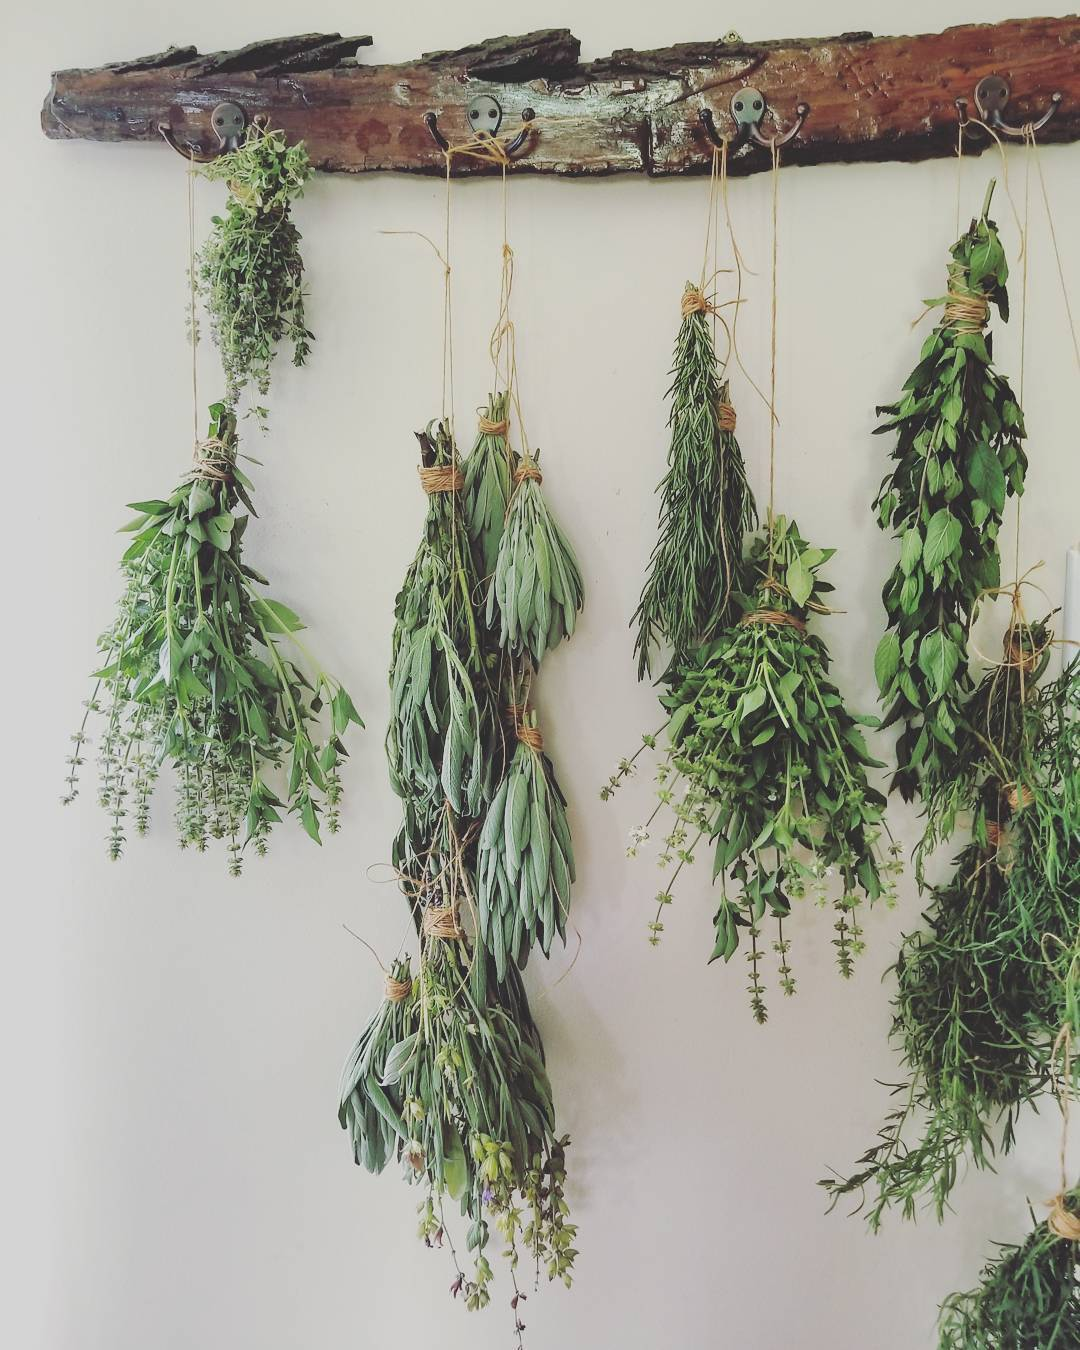 Hanging and drying herbs